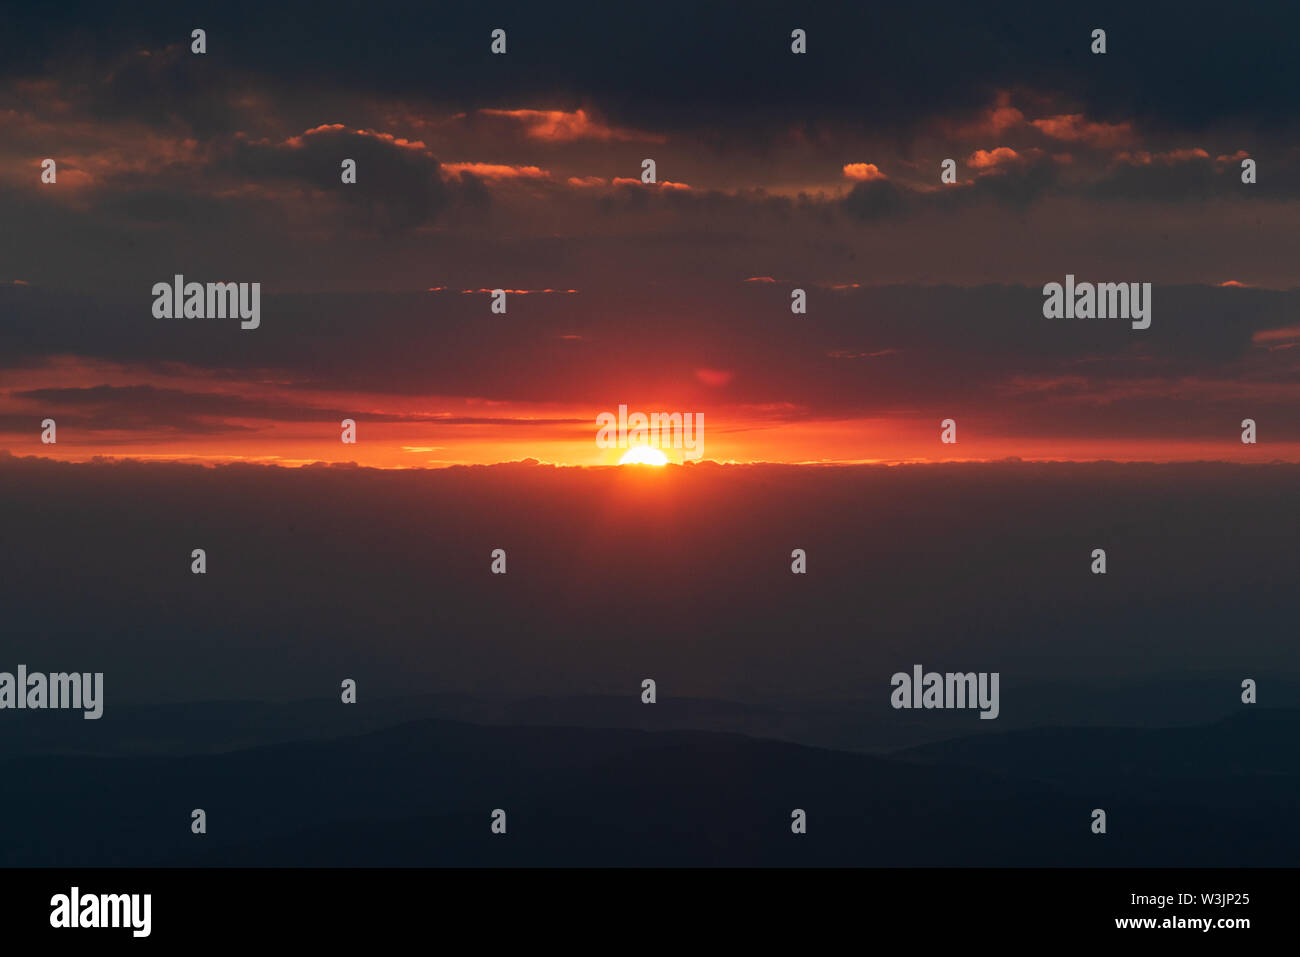 sunrise with clouds, hills silhouette and colorful sky from Snezka hill in Krkonose mountains on czech-polish borders - Stock Image